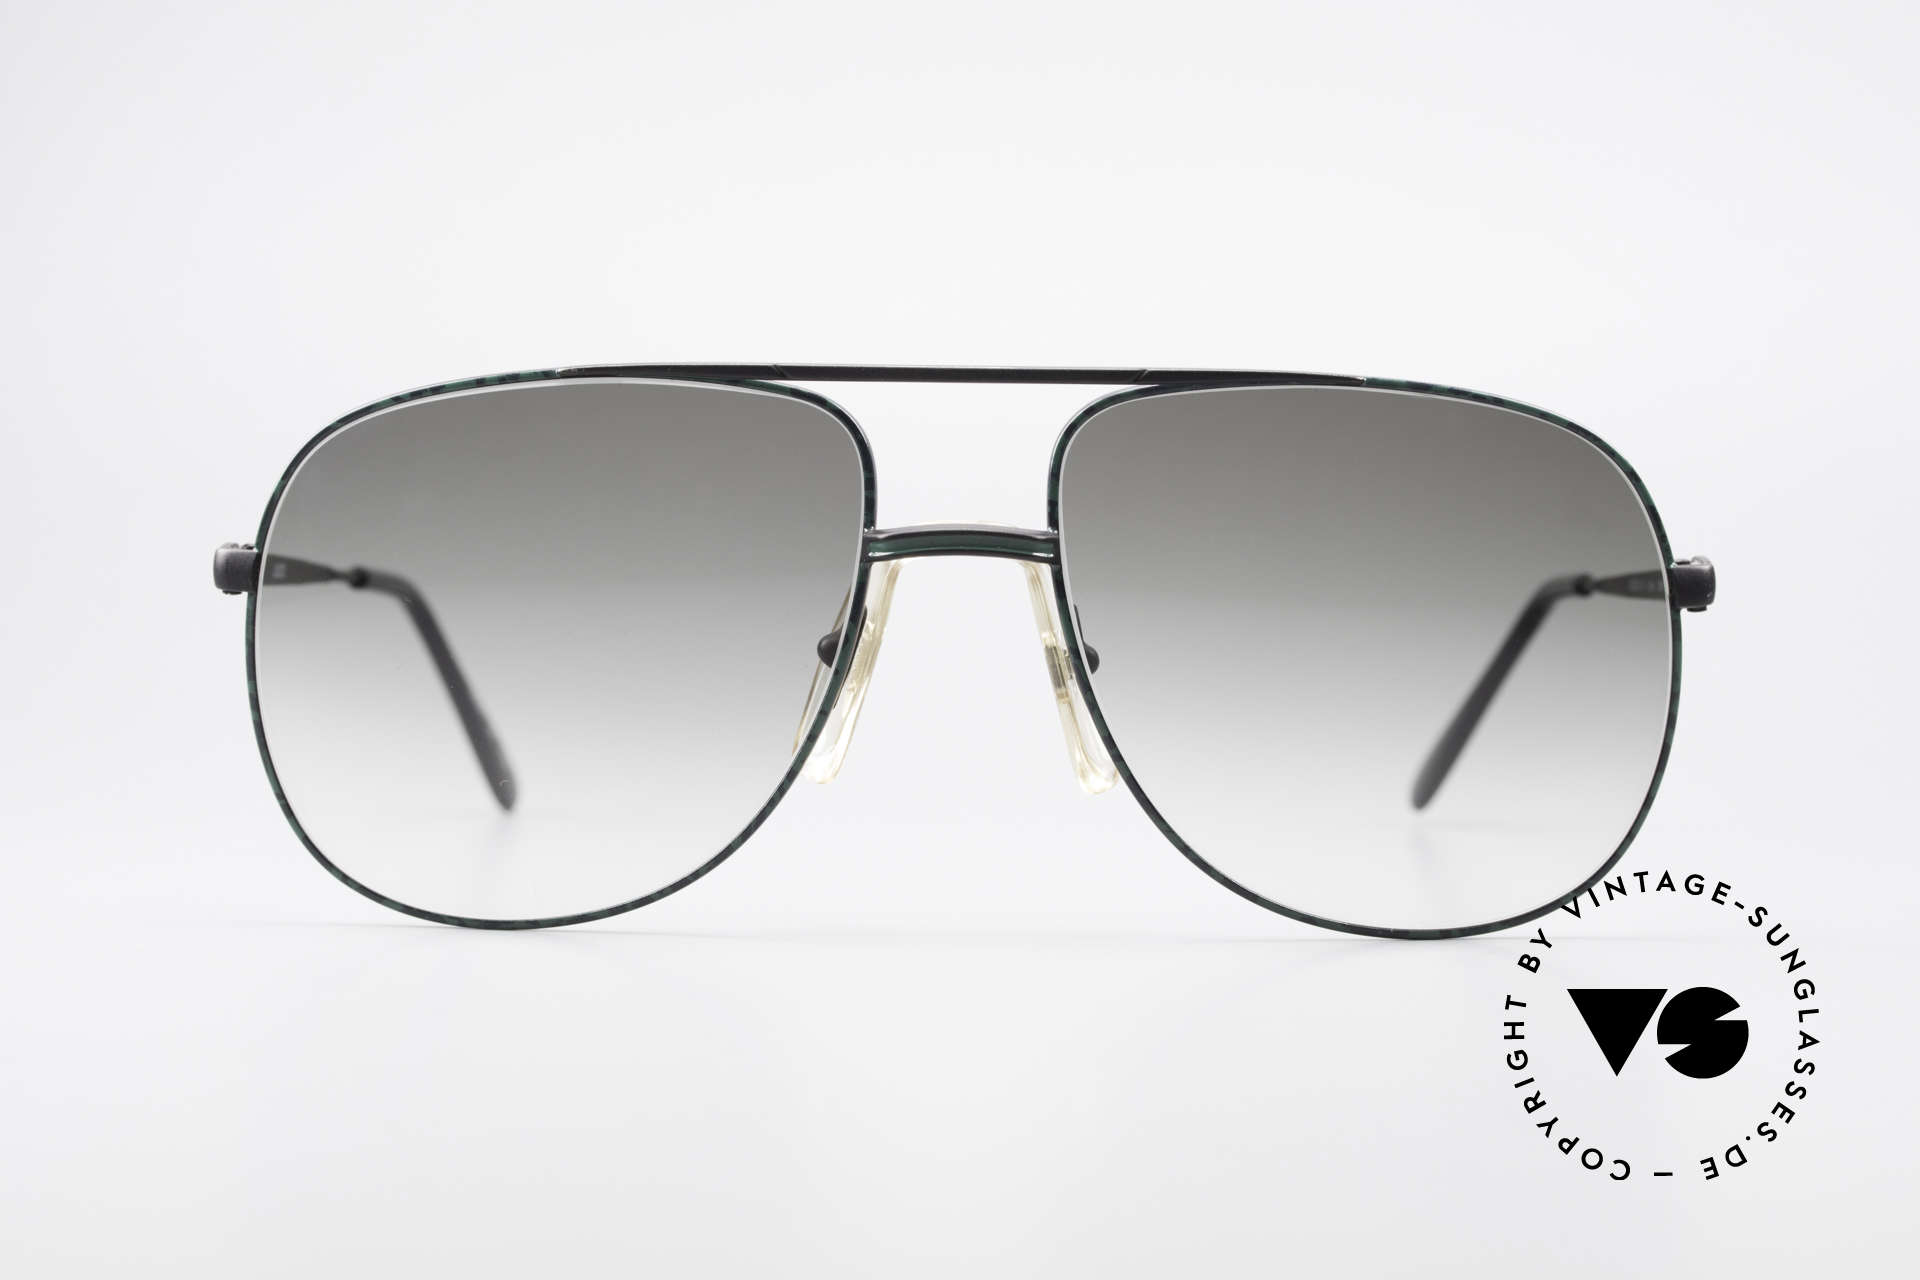 Lacoste 101 Sporty Aviator Sunglasses XL, mod. 101 was released in the 80s & modified in the 90's, Made for Men